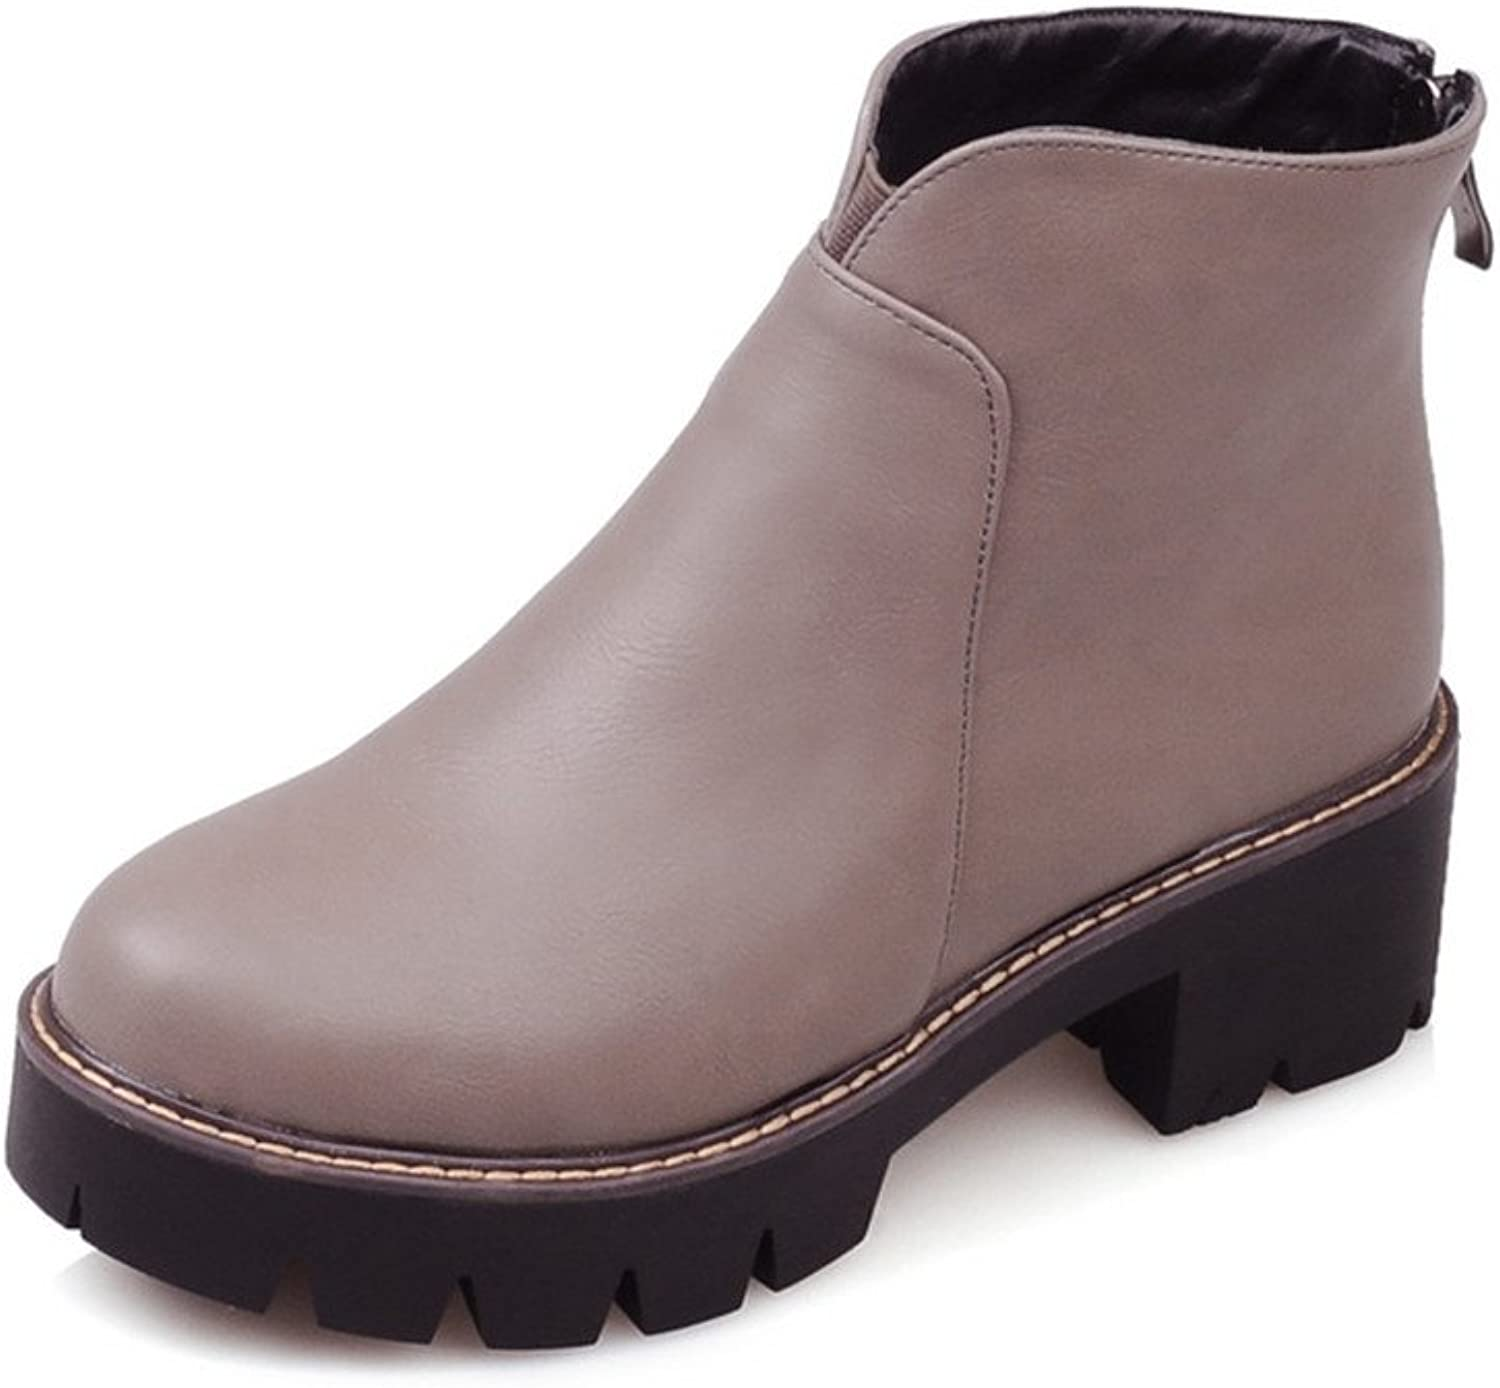 Lucksender Womens Back Zip Round Toe Chunky Low Heel Platform Ankle High Boots